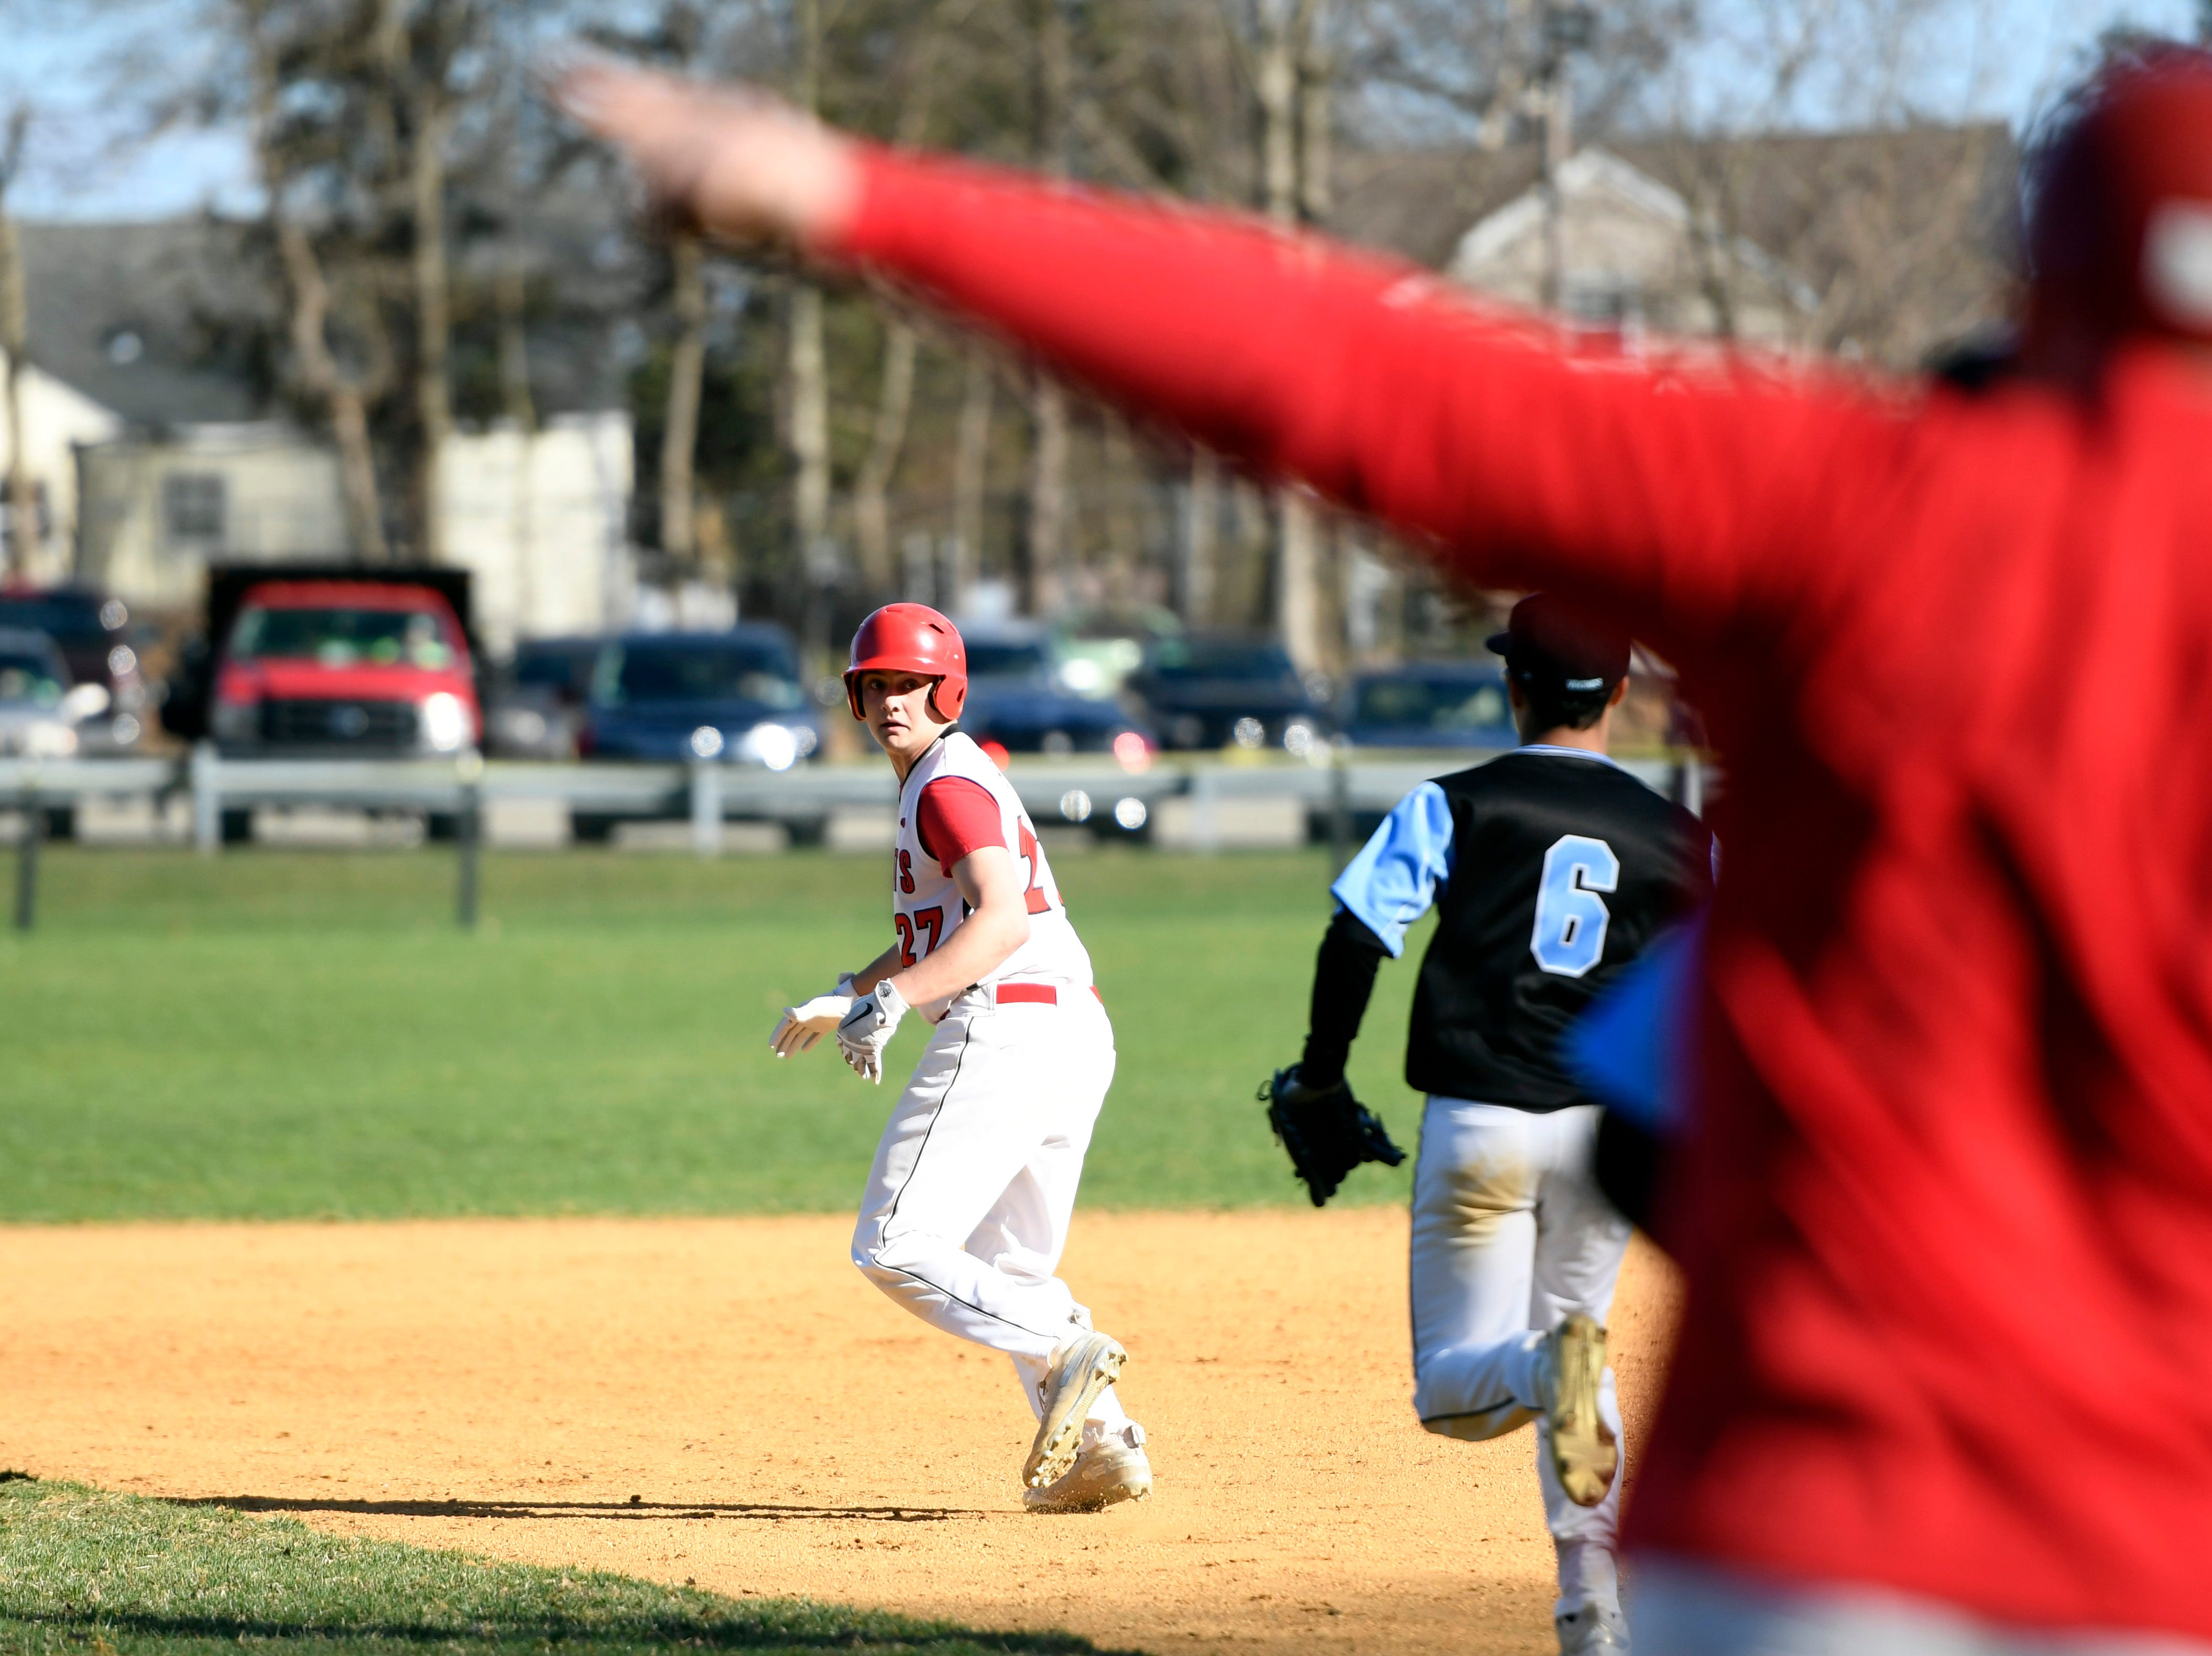 Morris Hills runner Nick Carlotti (27) runs towards second away from a tag from Parsippany Hills' Ty Sallie (8) as Morris Hills head coach Bret Giovine, right, instructs from the sideline on Wednesday, April 10, 2019, in Rockaway.